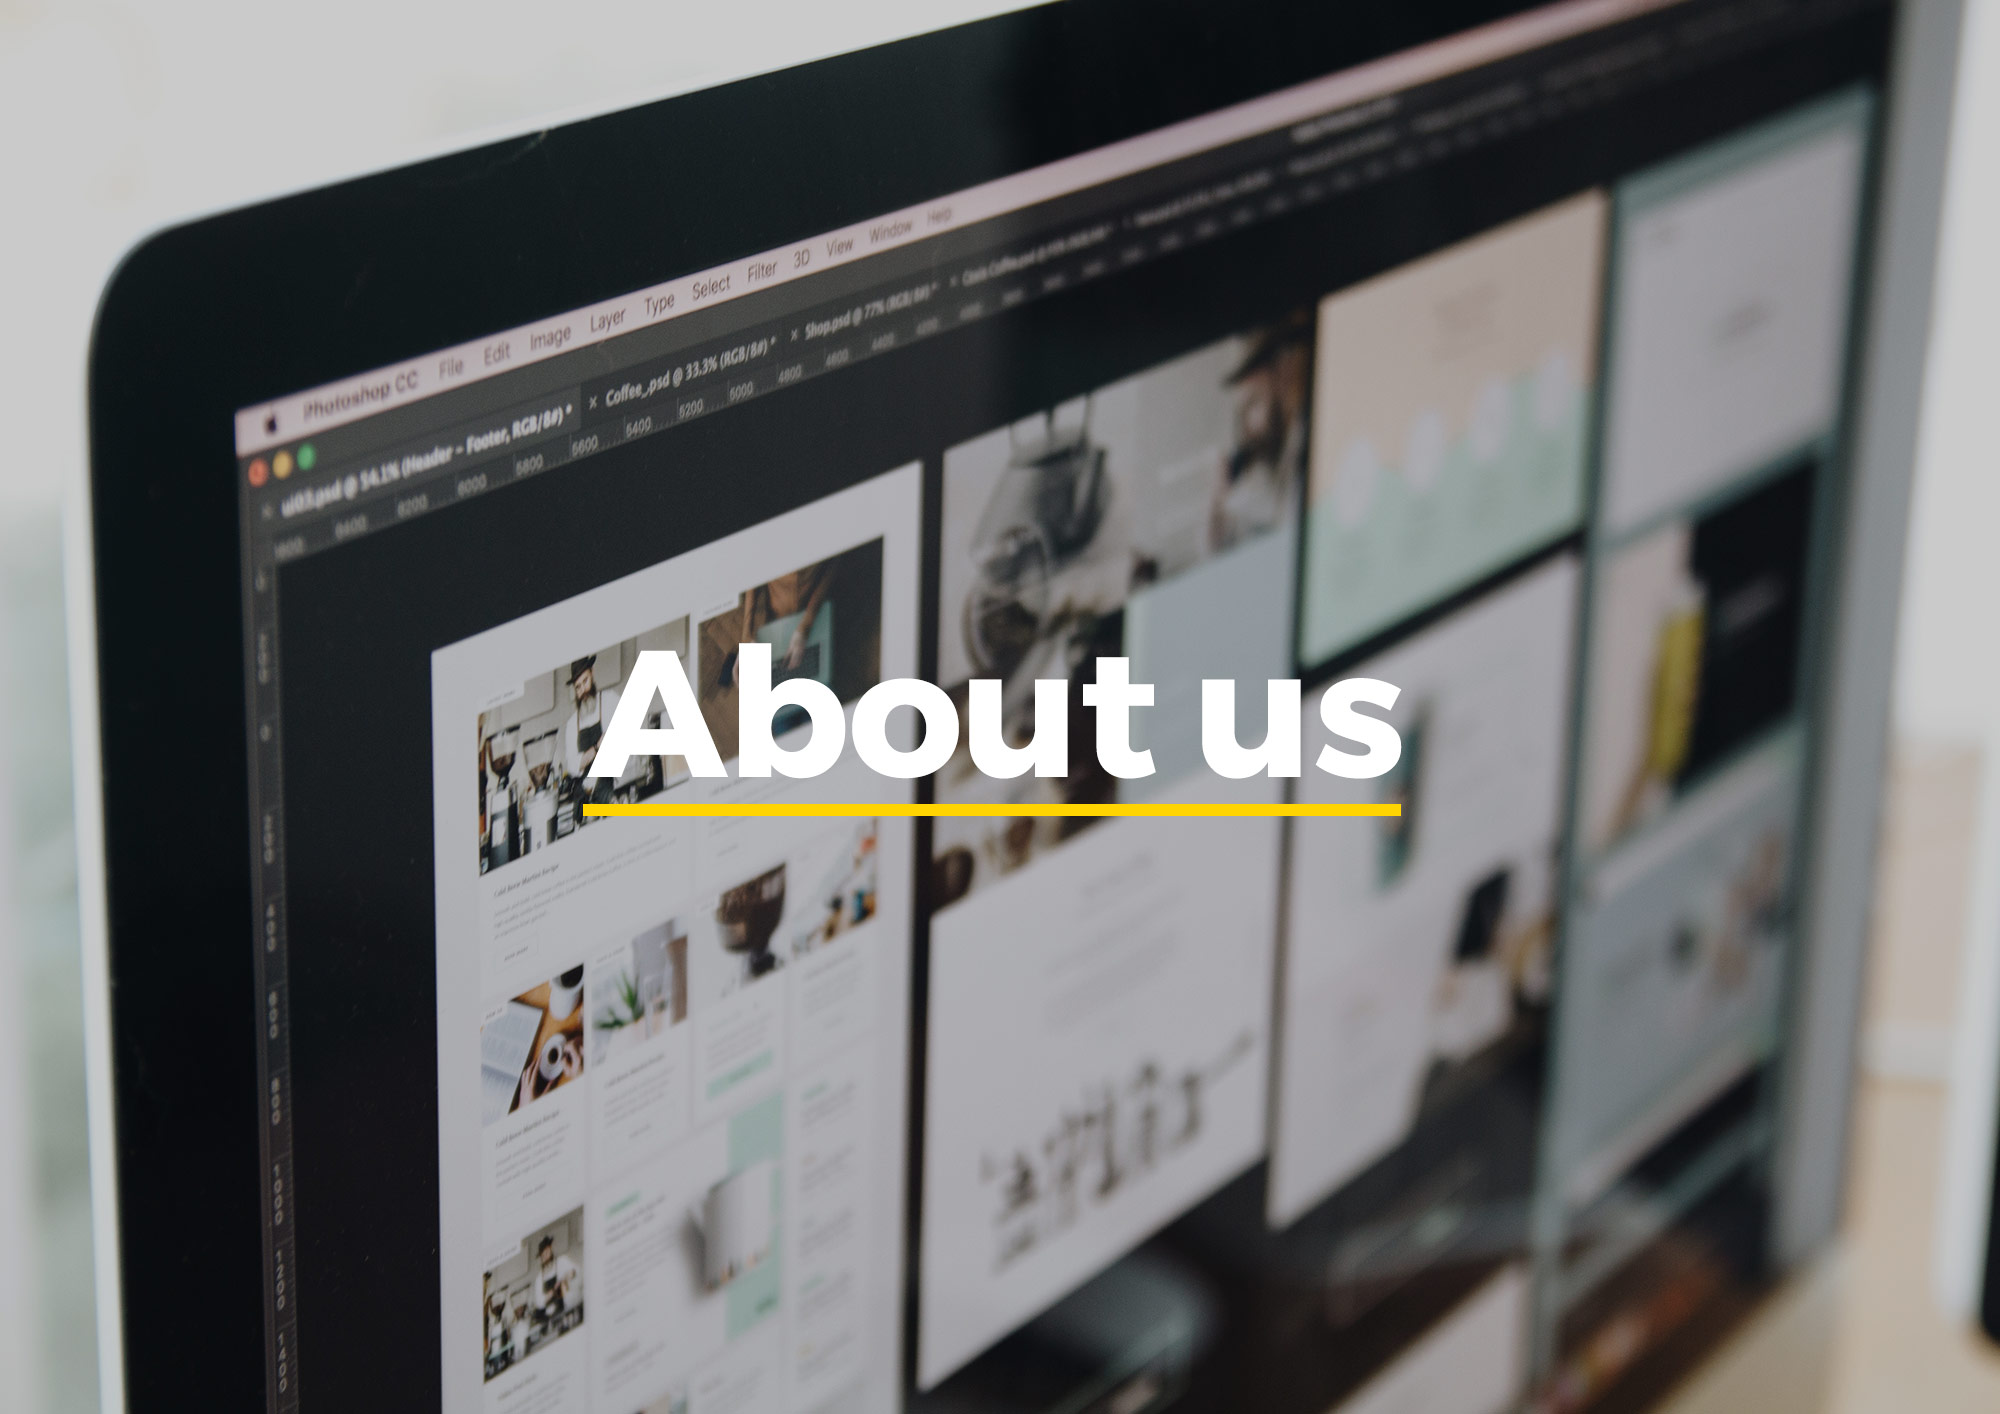 Aviary Creative - About us